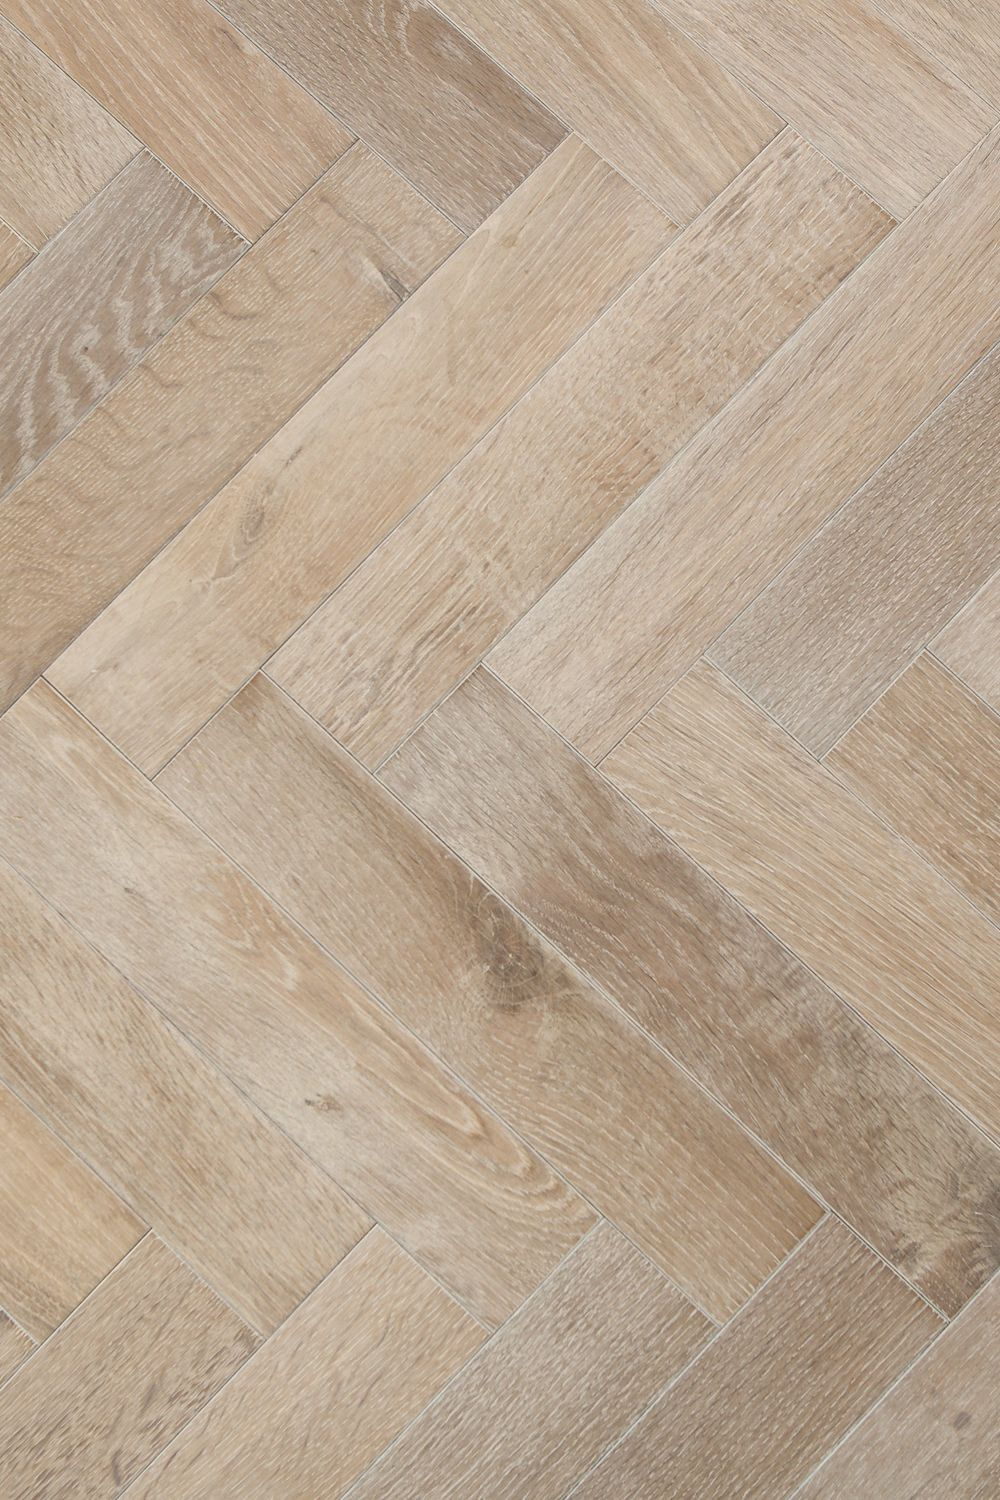 Antique Oak Flooring Slate Grey Parquet Available In Character Prime Grades Made Of European Oak Oak Parquet Flooring Wood Floor Design Herringbone Wood Floor